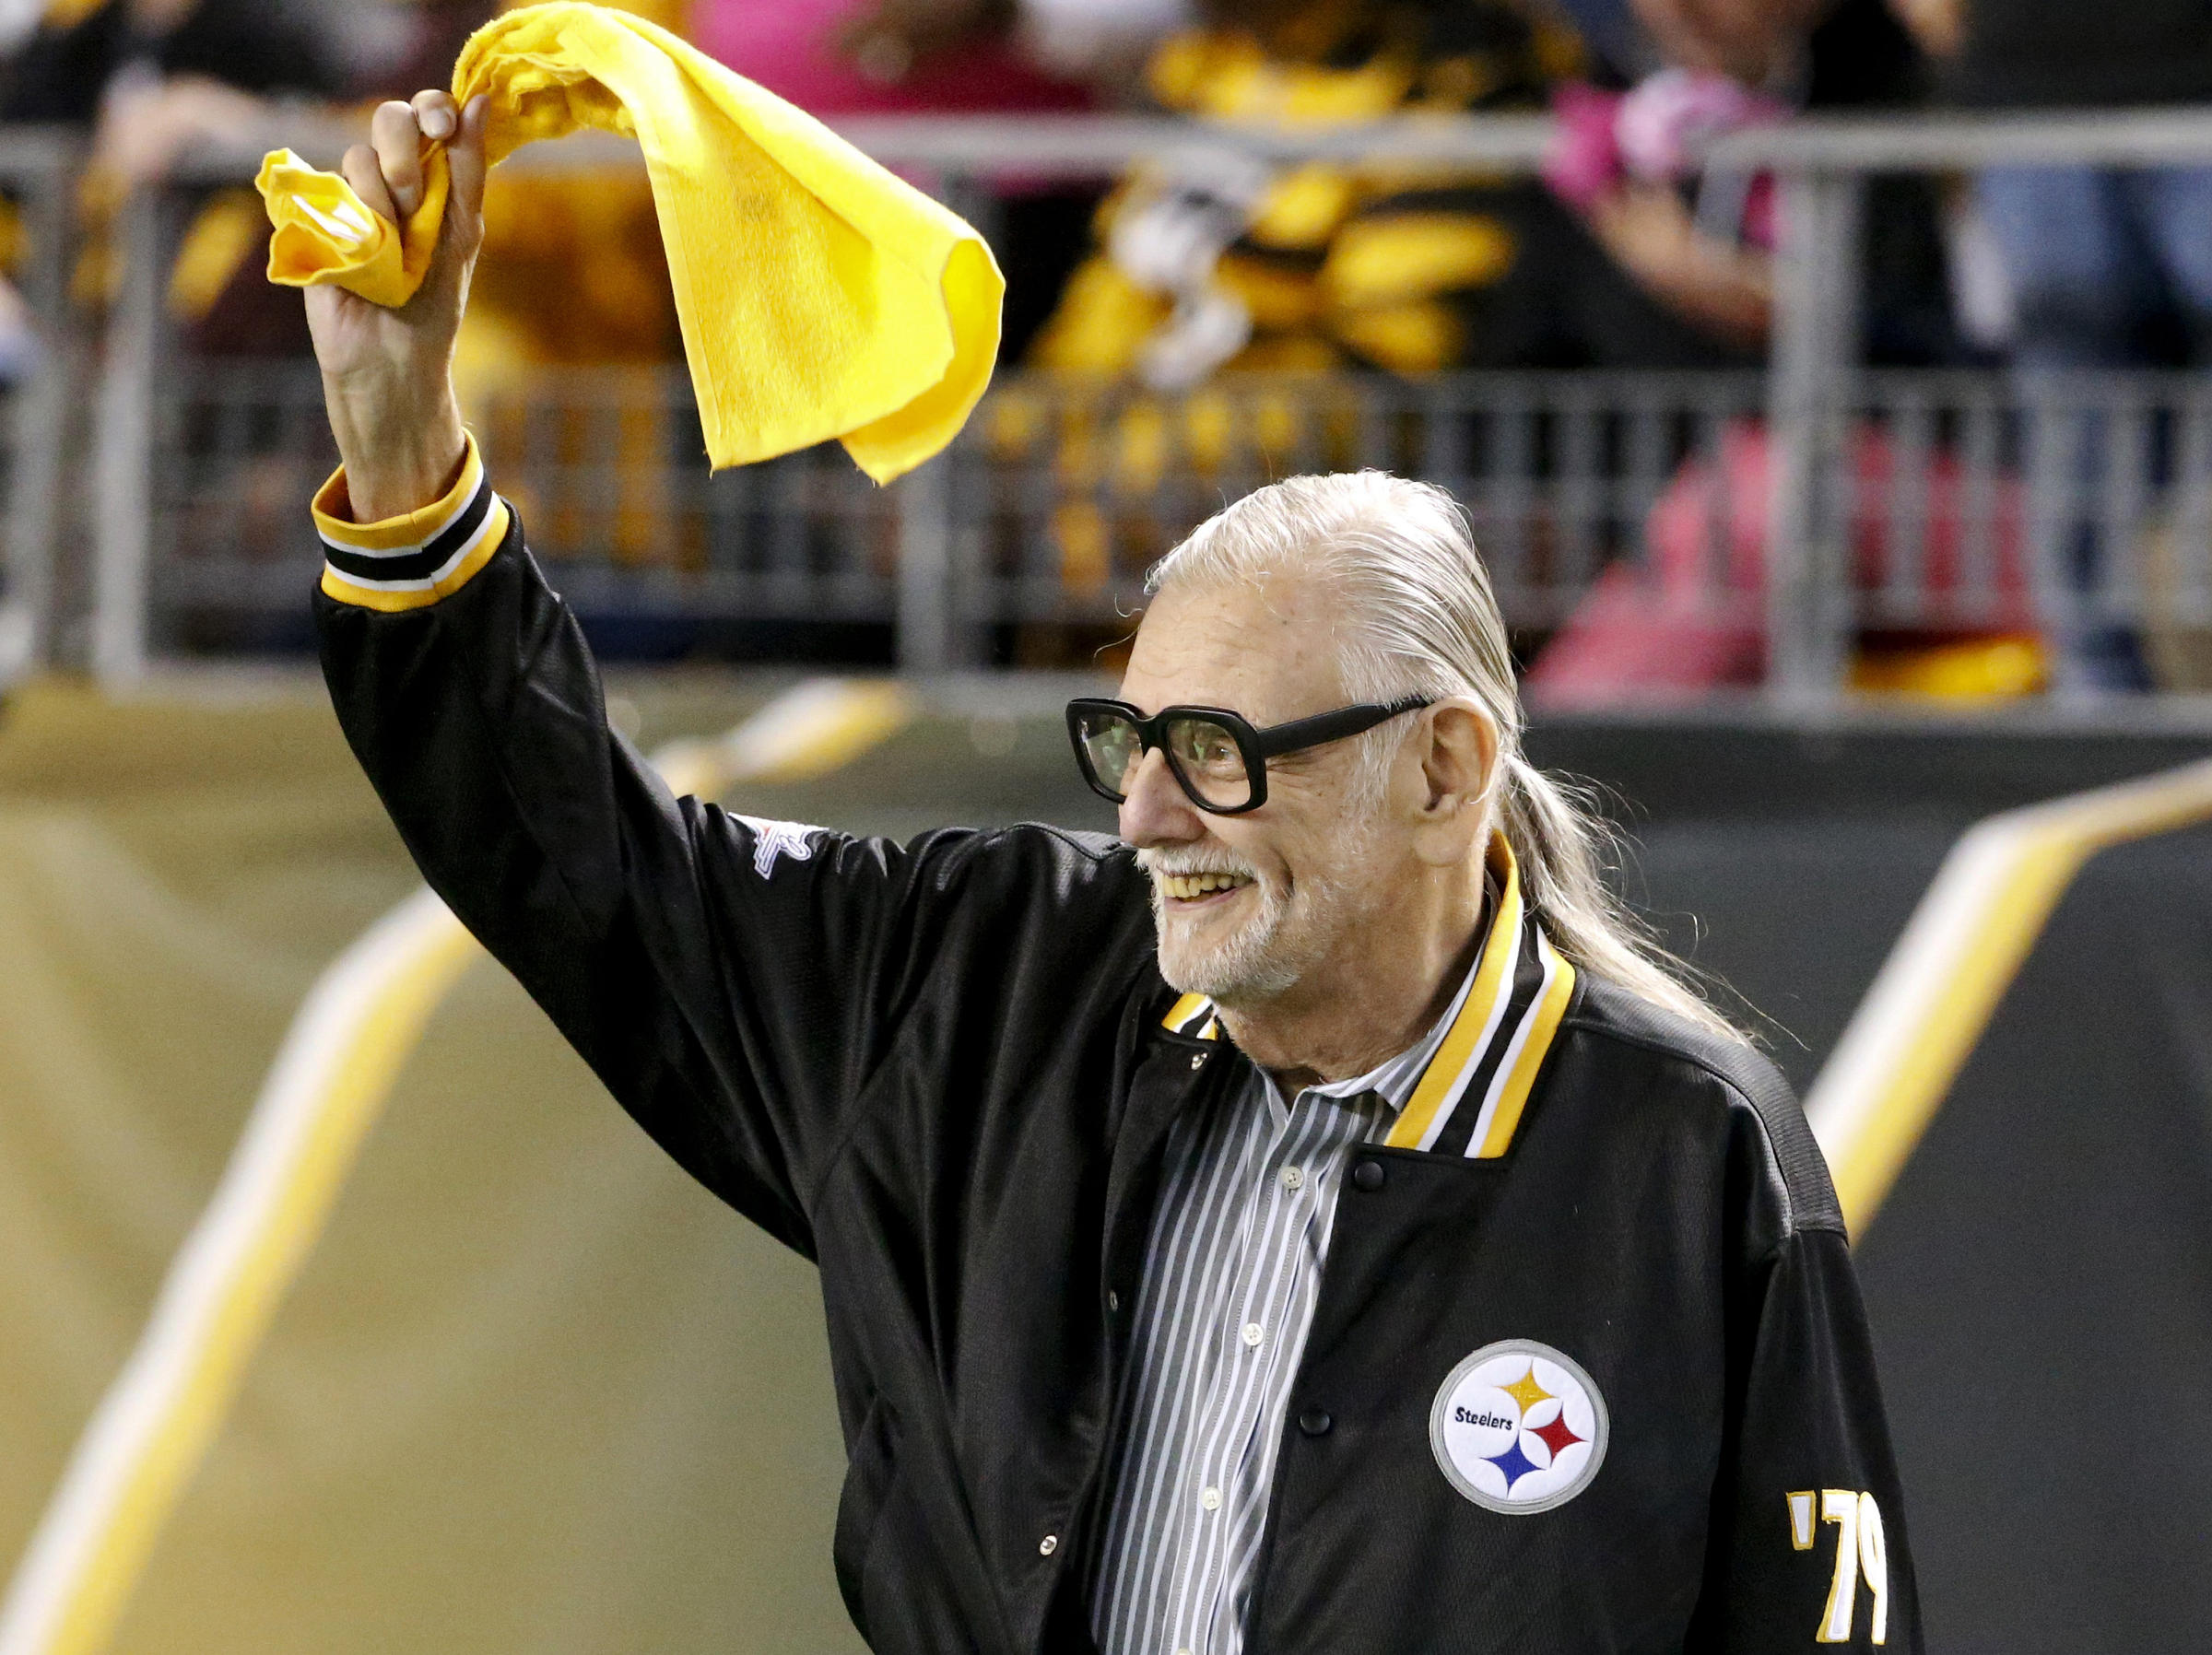 George Romero waves a terrible towel at a Pittsburgh Steelers game against the Baltimore Ravens